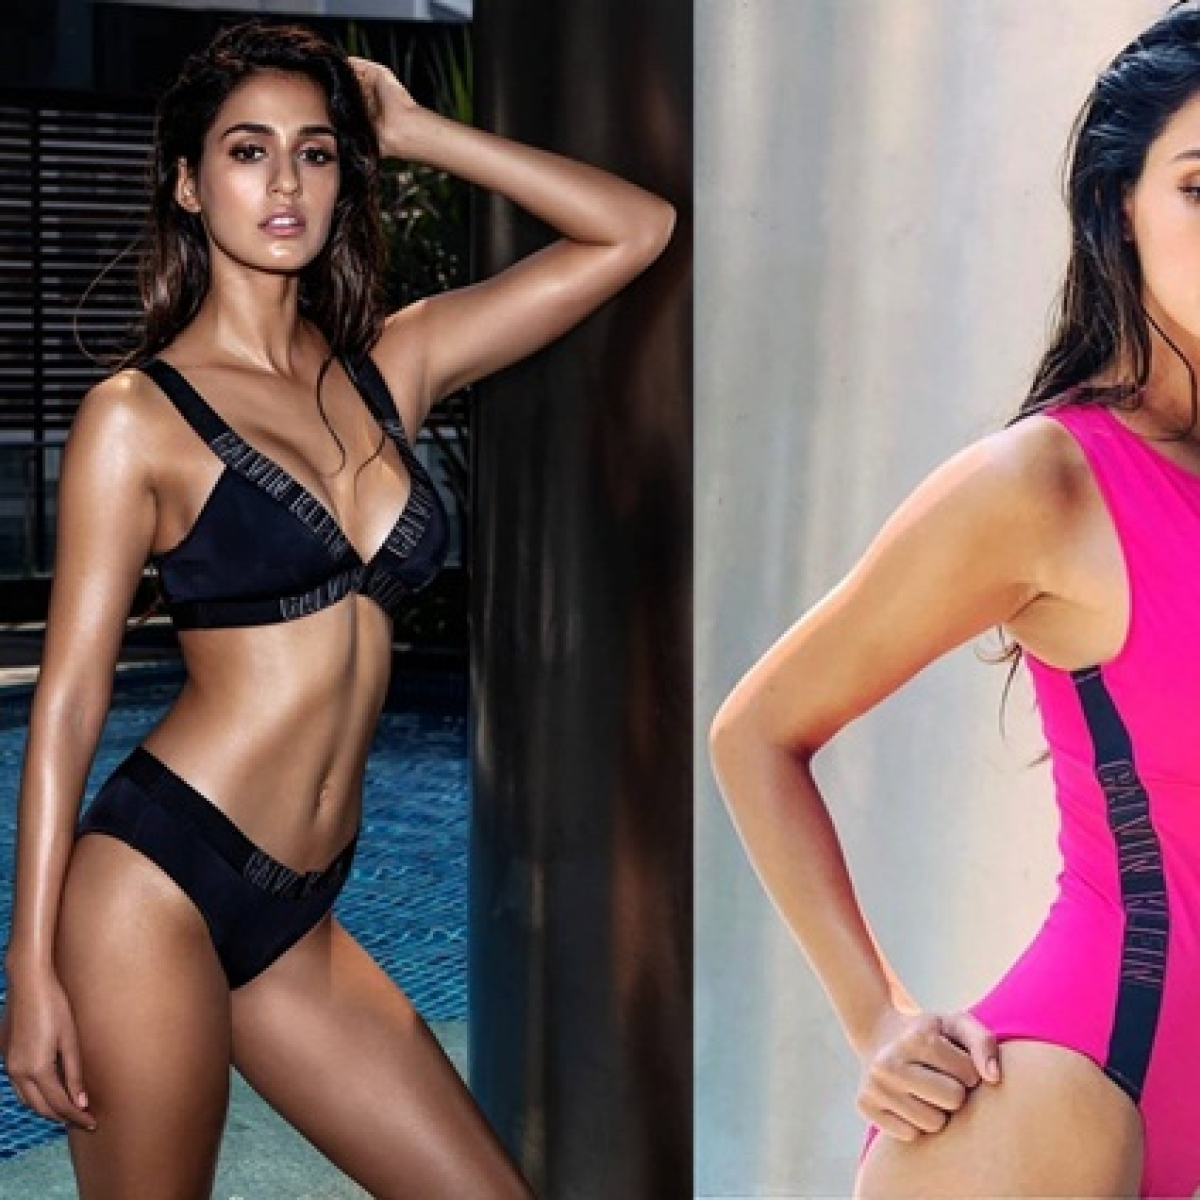 Best of 2019: 10 times Disha Patani's sexy Instagram pics set the internet on fire